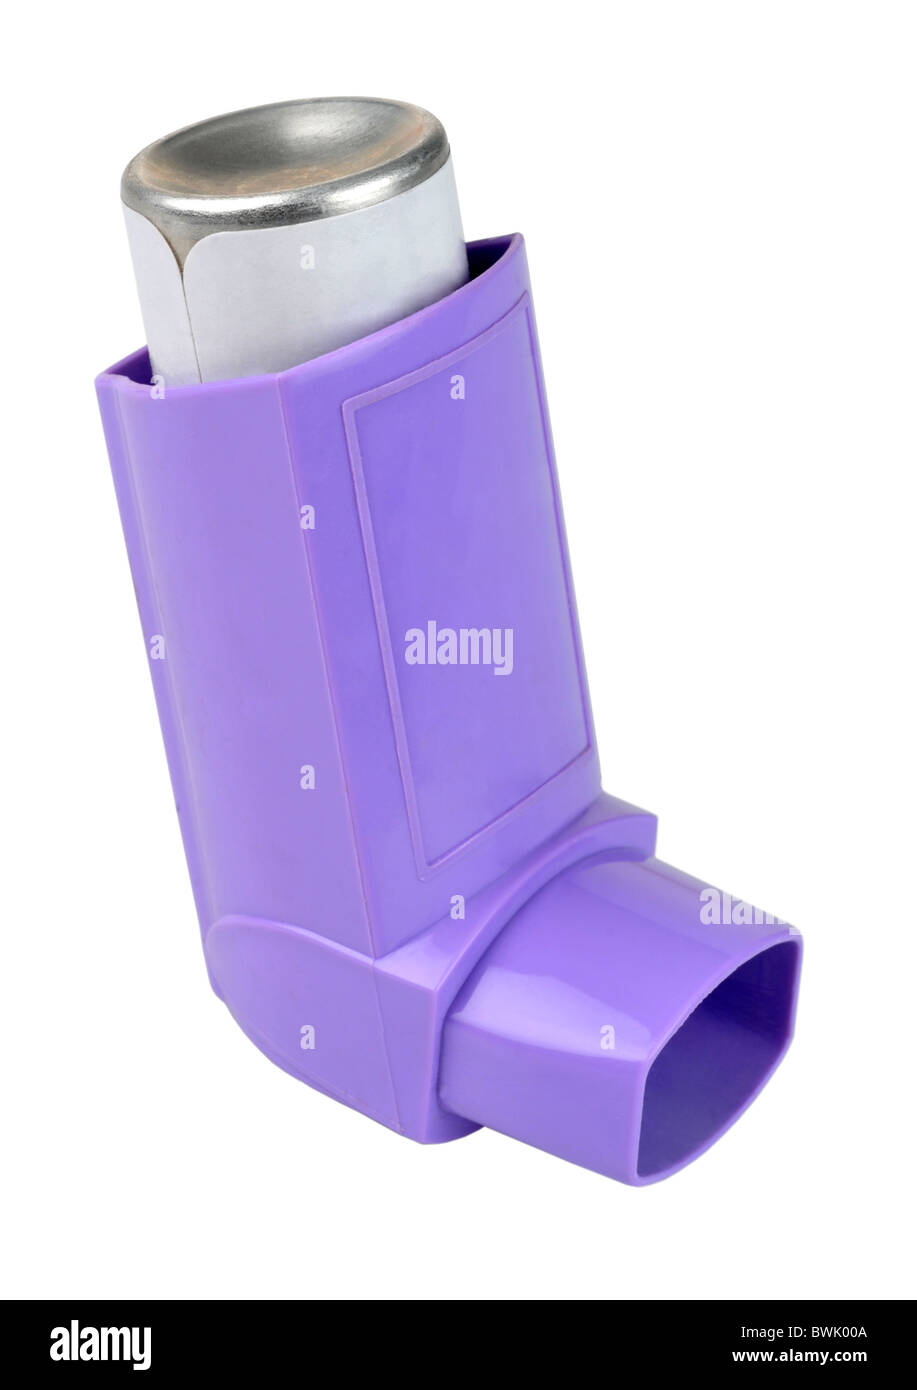 "Inhaler, asthma inhaler or puffer on ""white background"" - Stock Image"